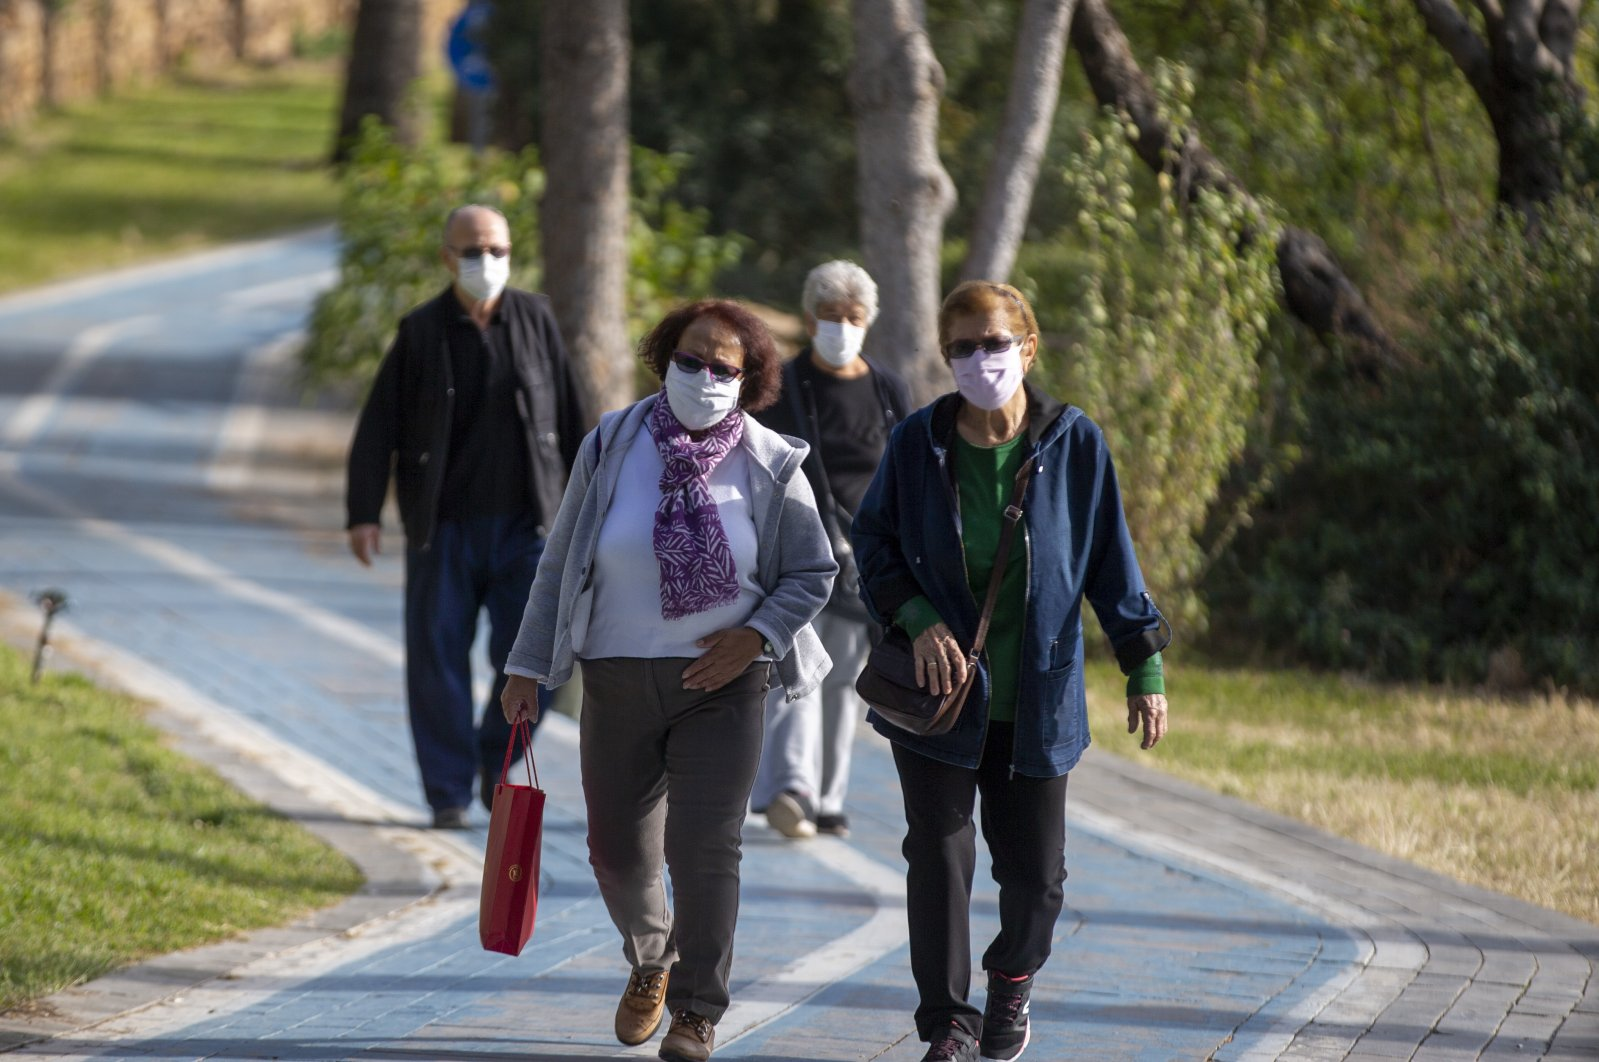 People wearing protective masks walk in a park in Antalya, southern Turkey, Nov. 24, 2020. (AA Photo)